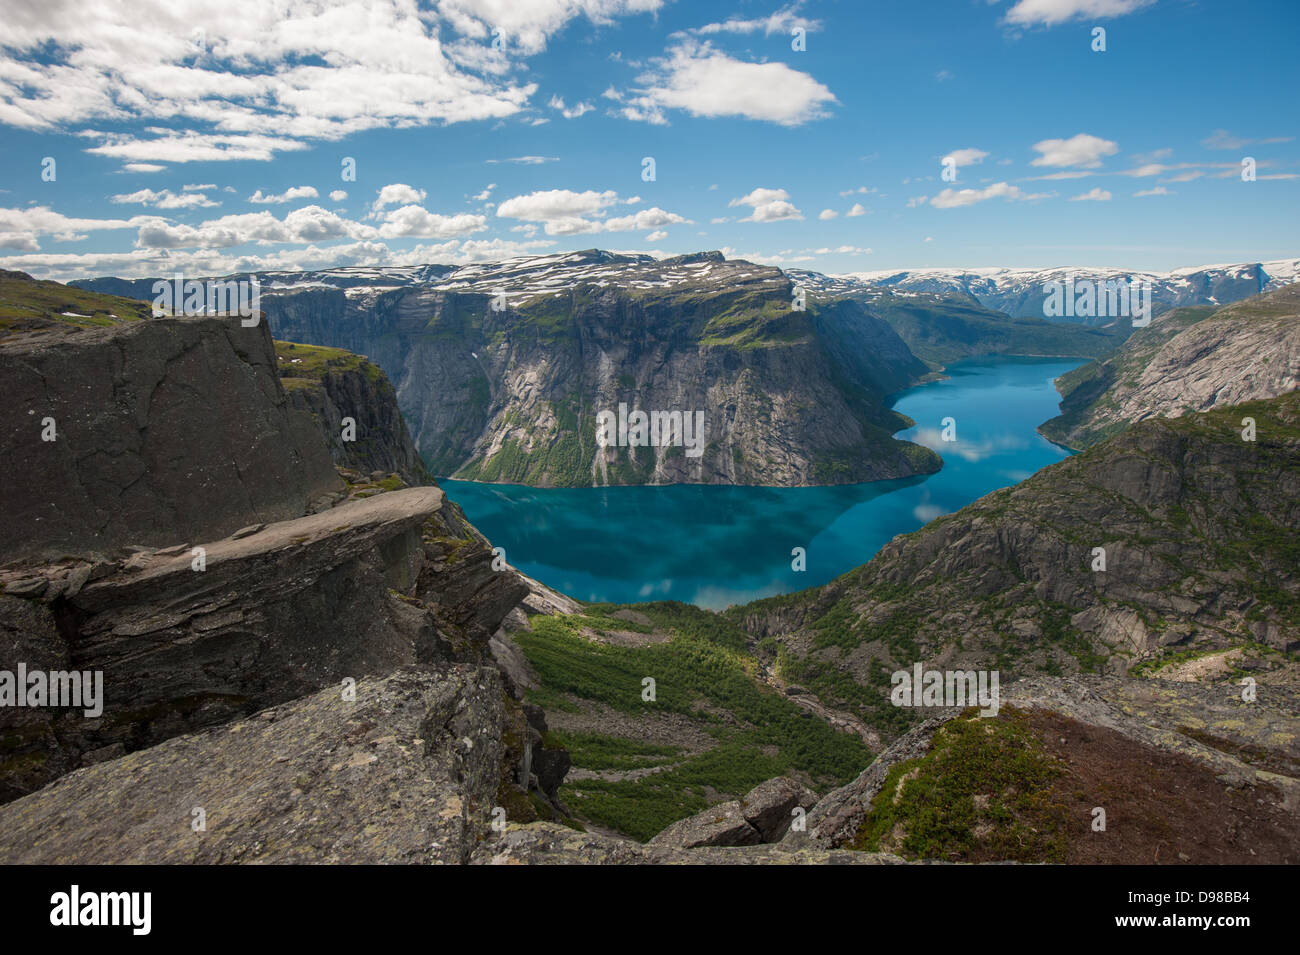 Trolltunga, Troll's tongue rock above lake Ringedalsvatnet, Norway - Stock Image